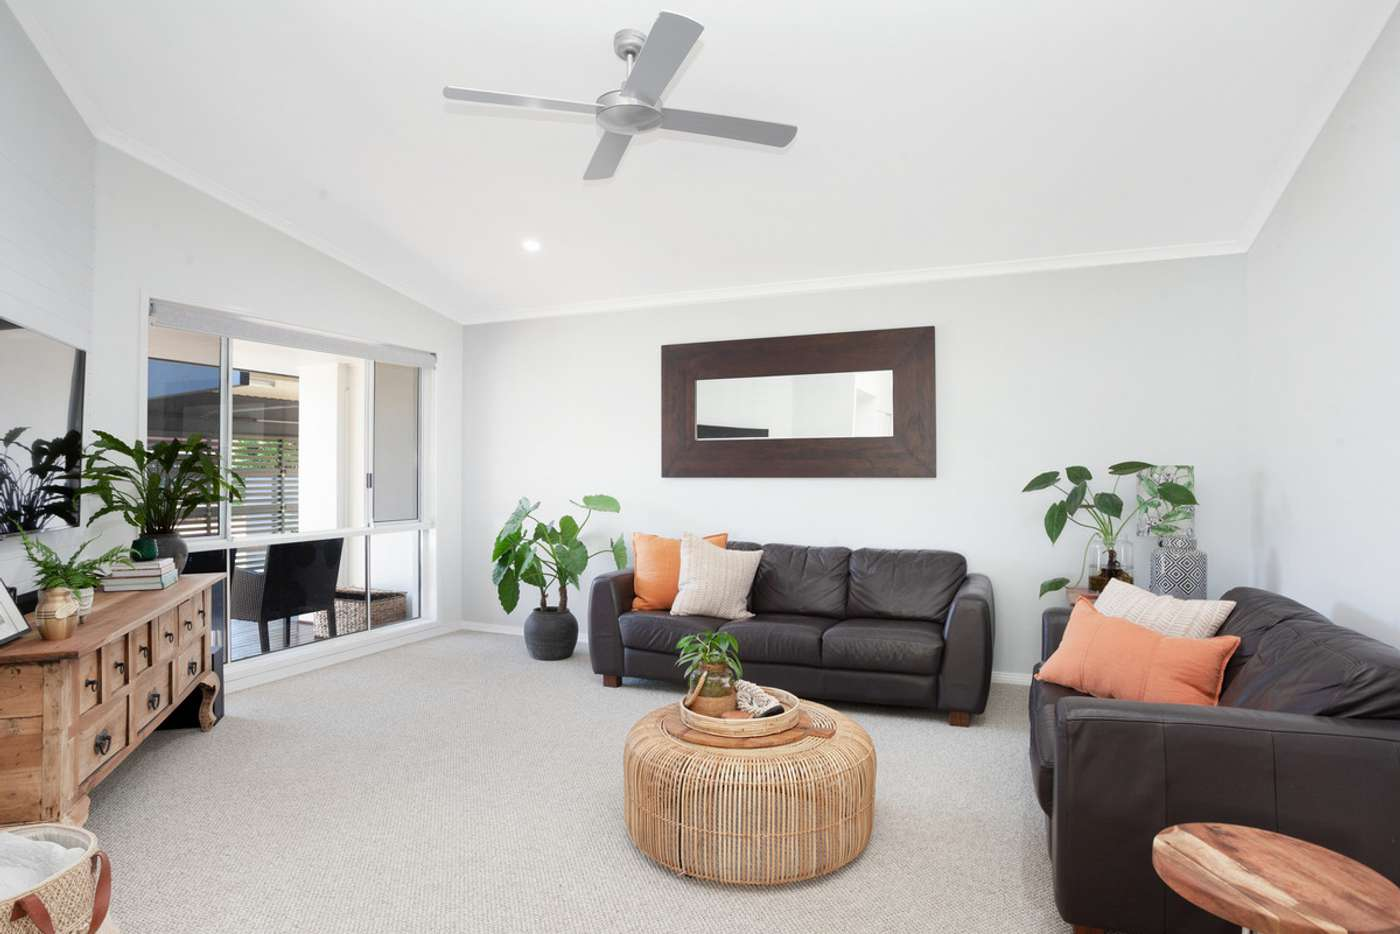 Fifth view of Homely house listing, 18 Coronet Crescent, Burleigh Waters QLD 4220